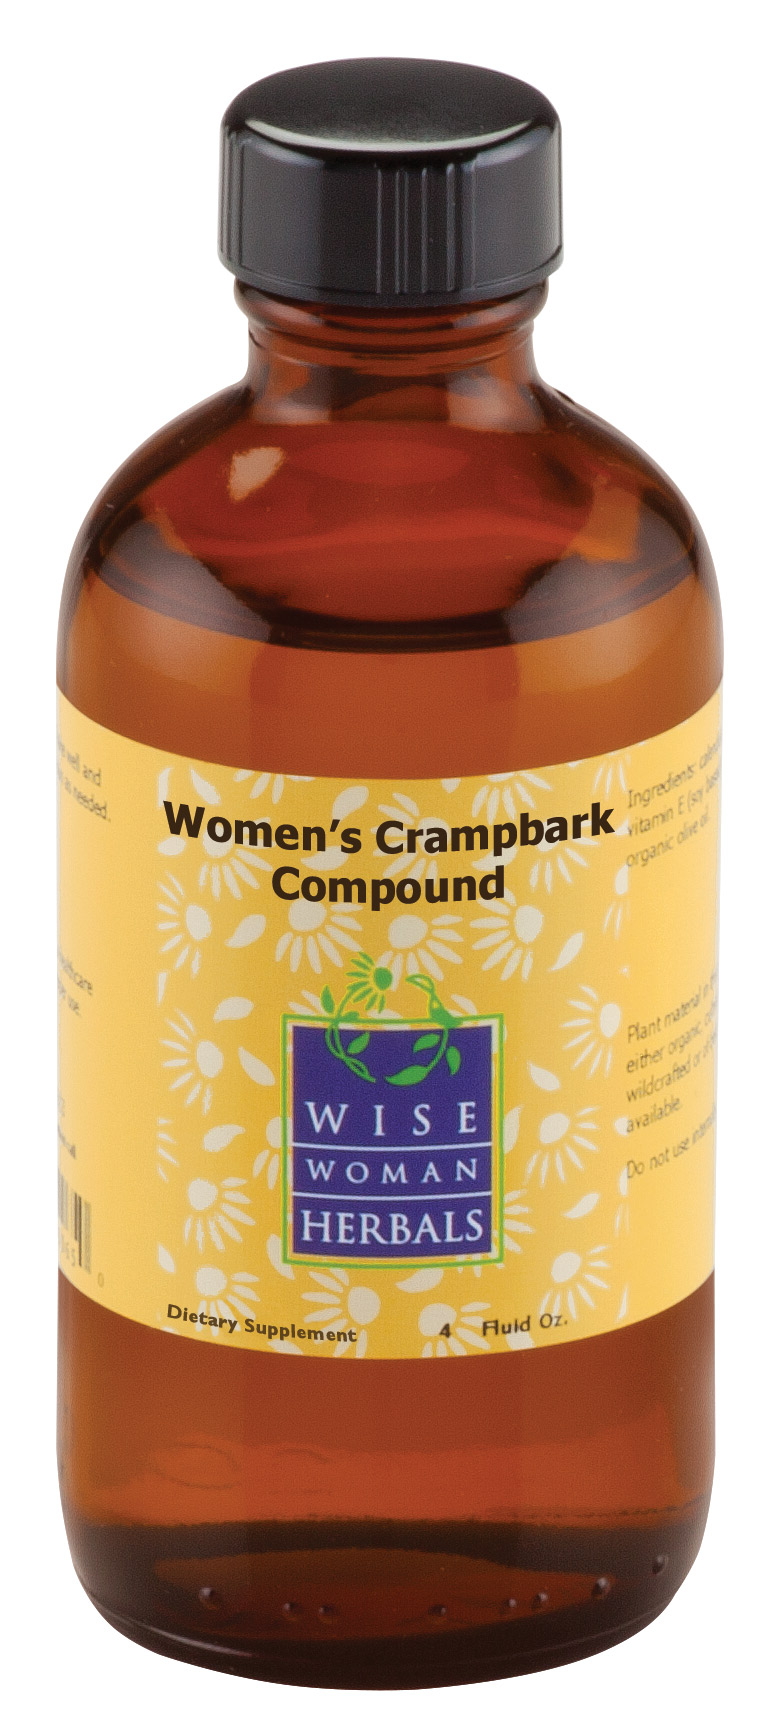 Women's Crampbark Compound, 1 oz